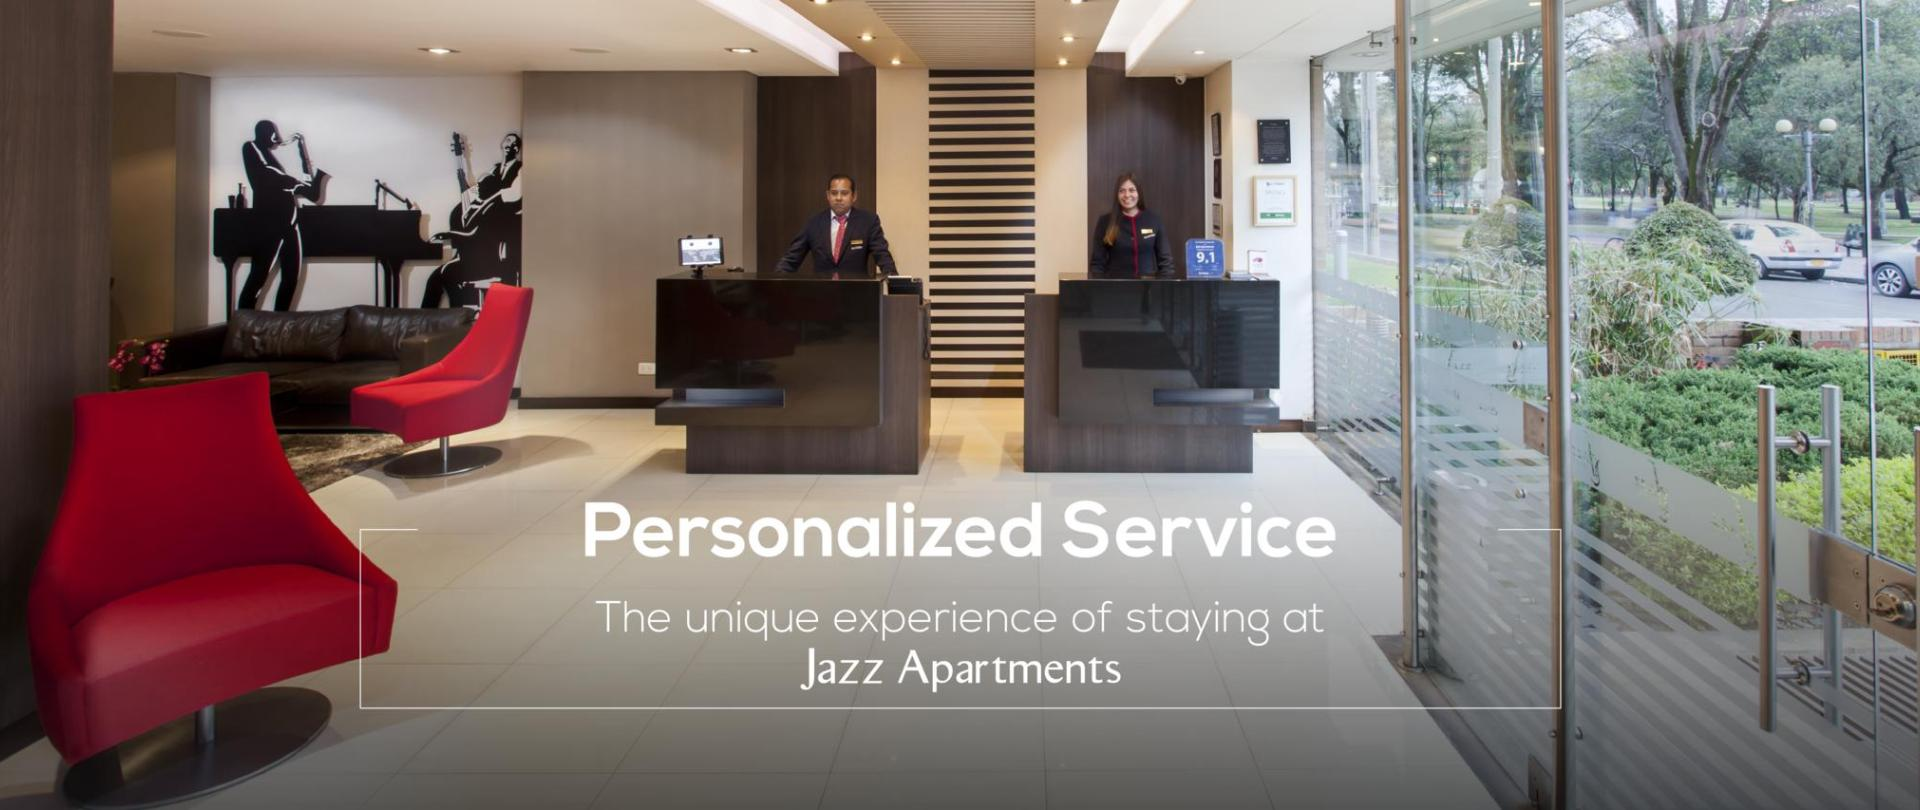 www-jazzapartments-com-service sur mesure ingles.png